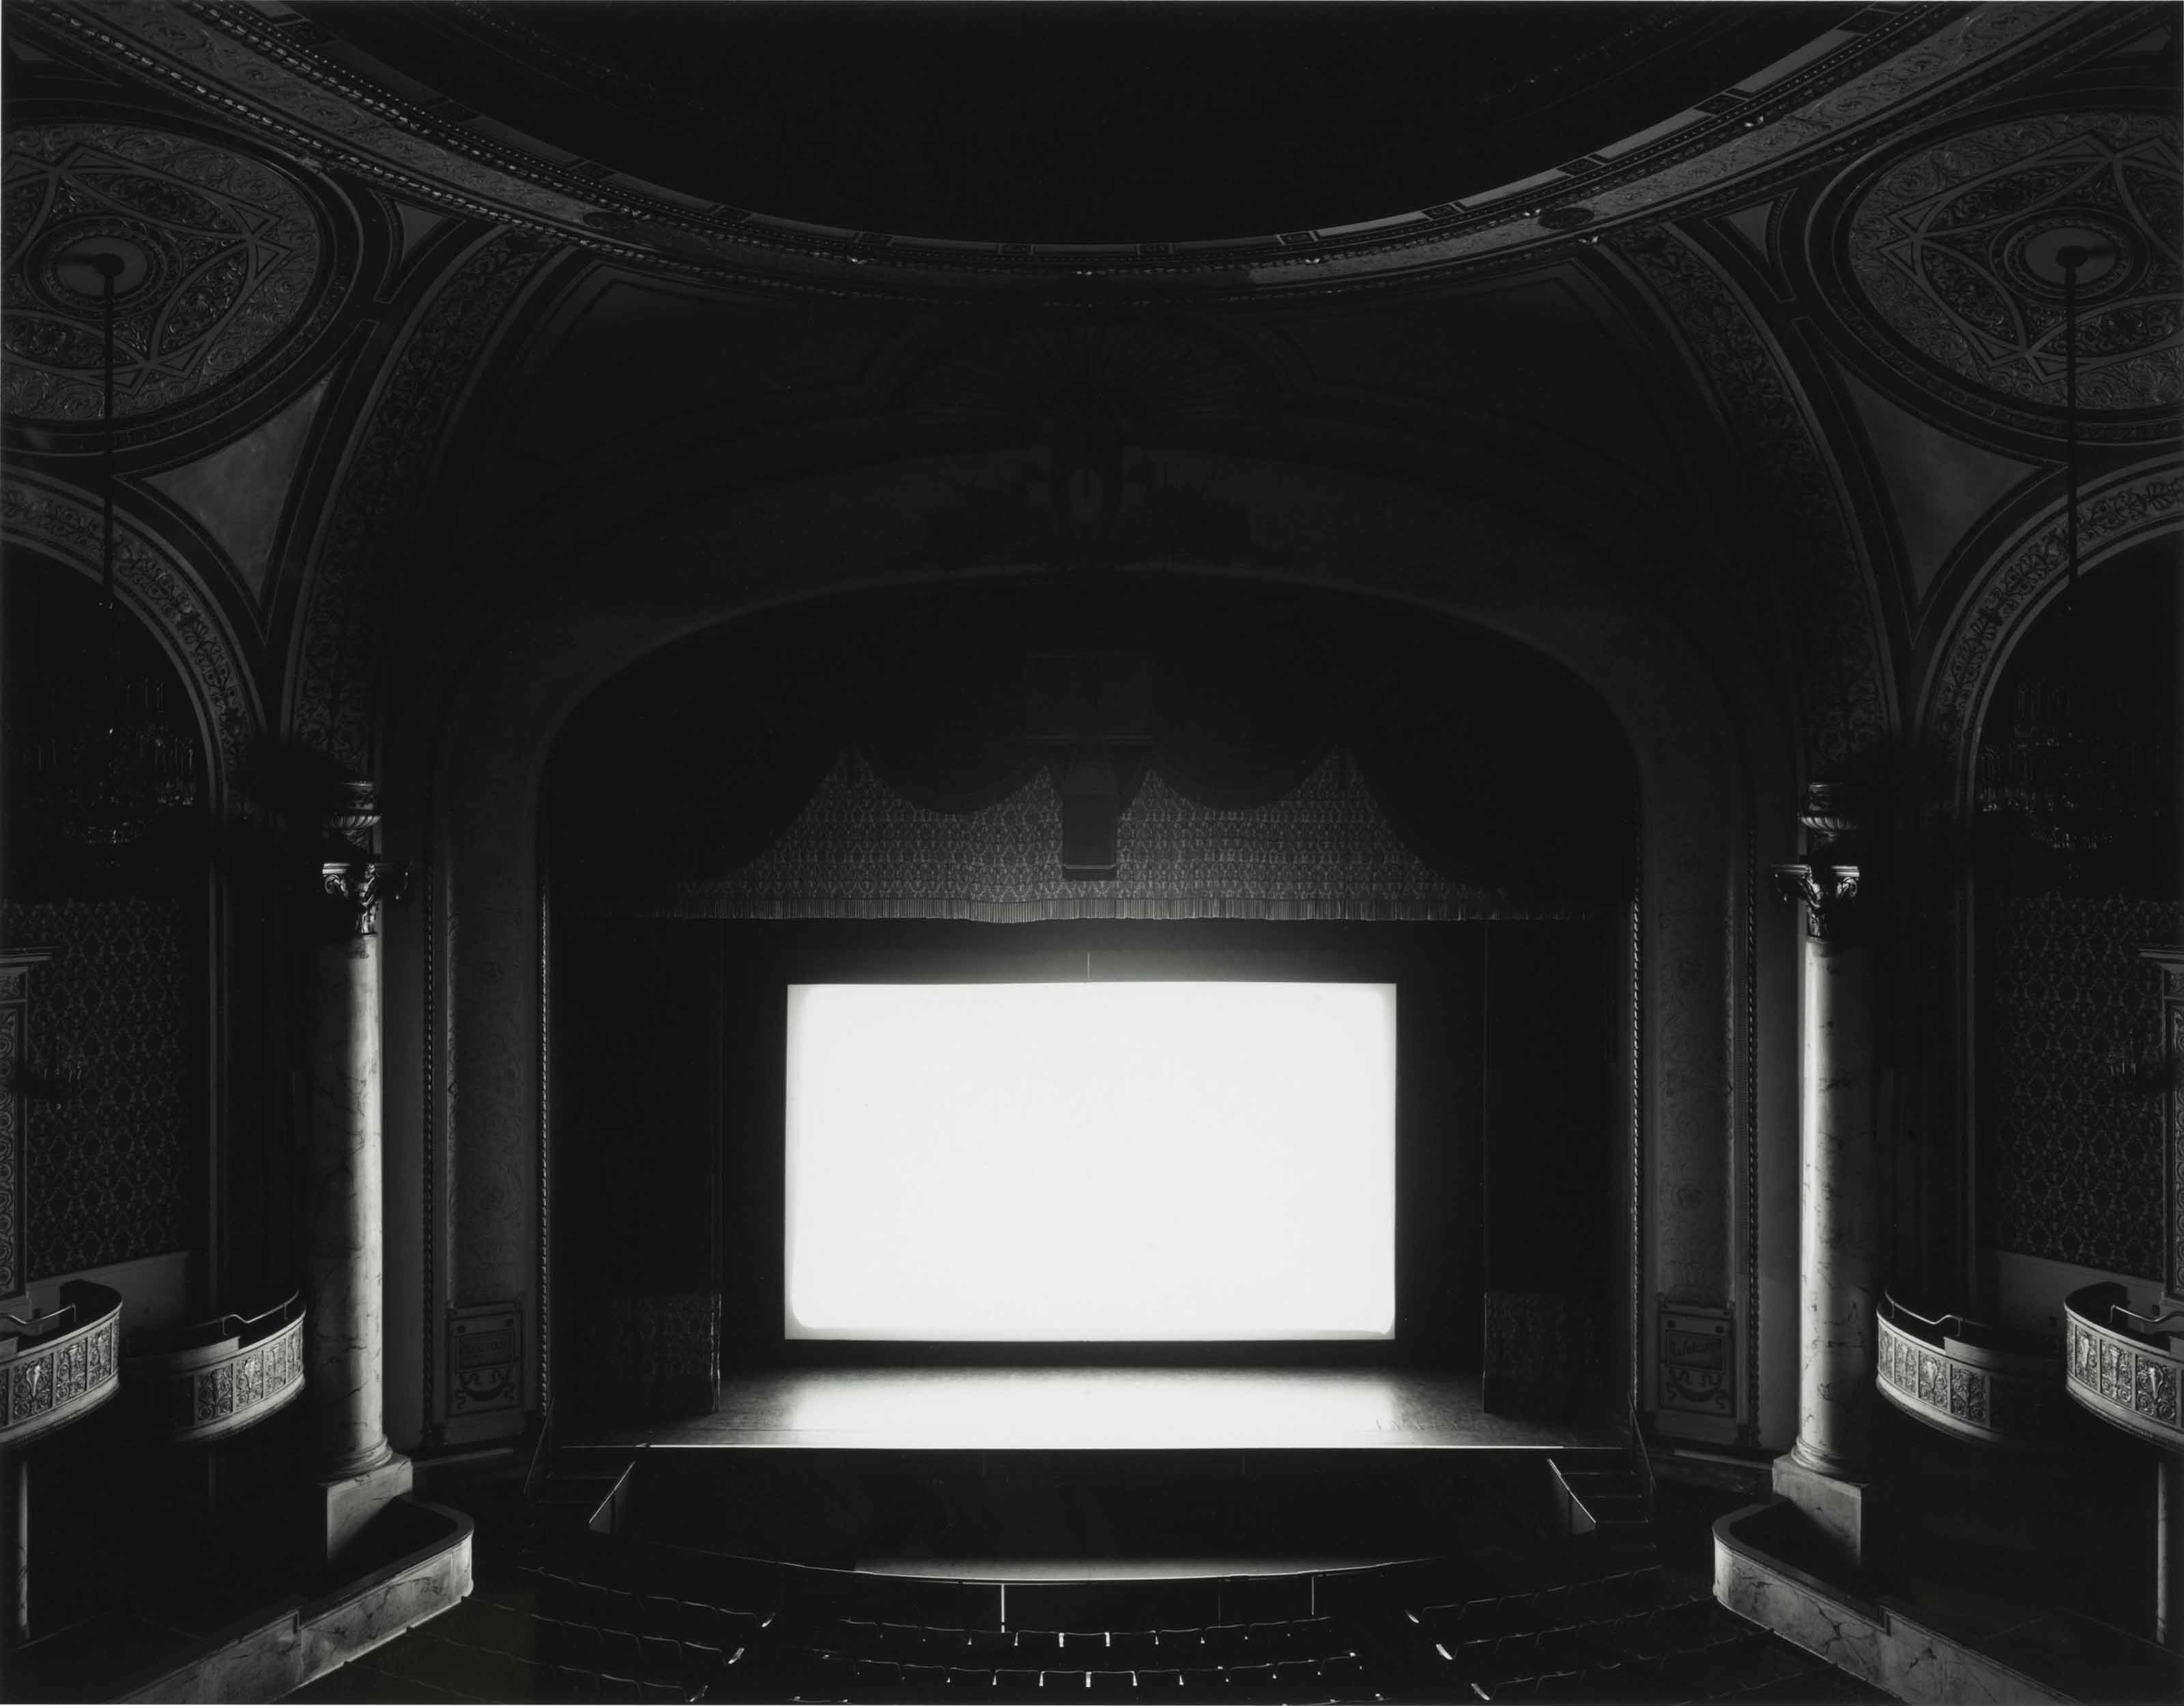 Hiroshi Sugimoto - Theaters - Proctor's Theatre, New York, 1996